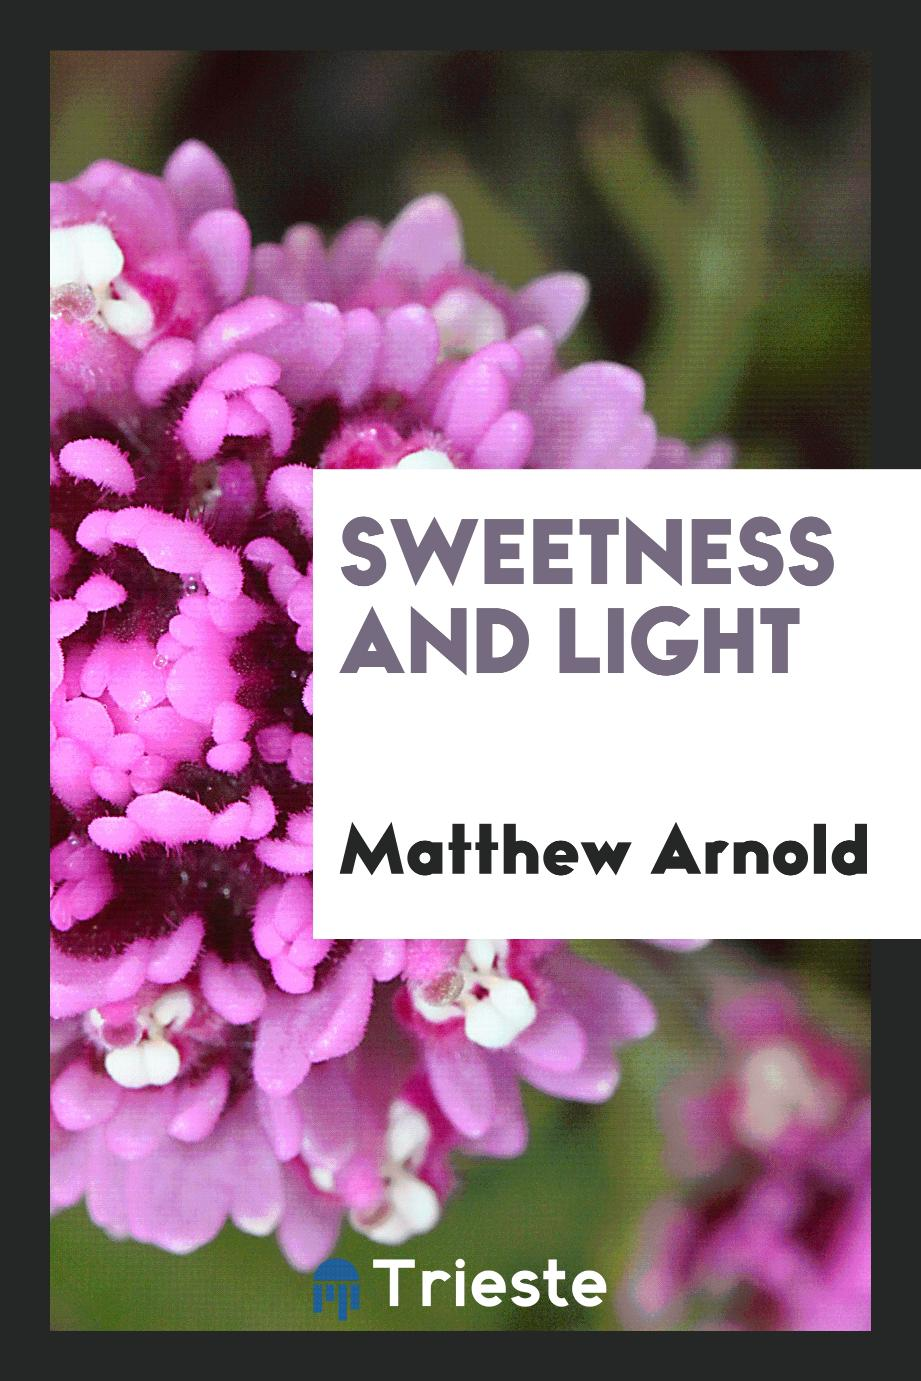 a literary analysis of sweetness and light by matthew arnold Buy a cheap copy of sweetness and light book by matthew arnold free shipping over $10 sweetness and light by walter pater and matthew arnold.